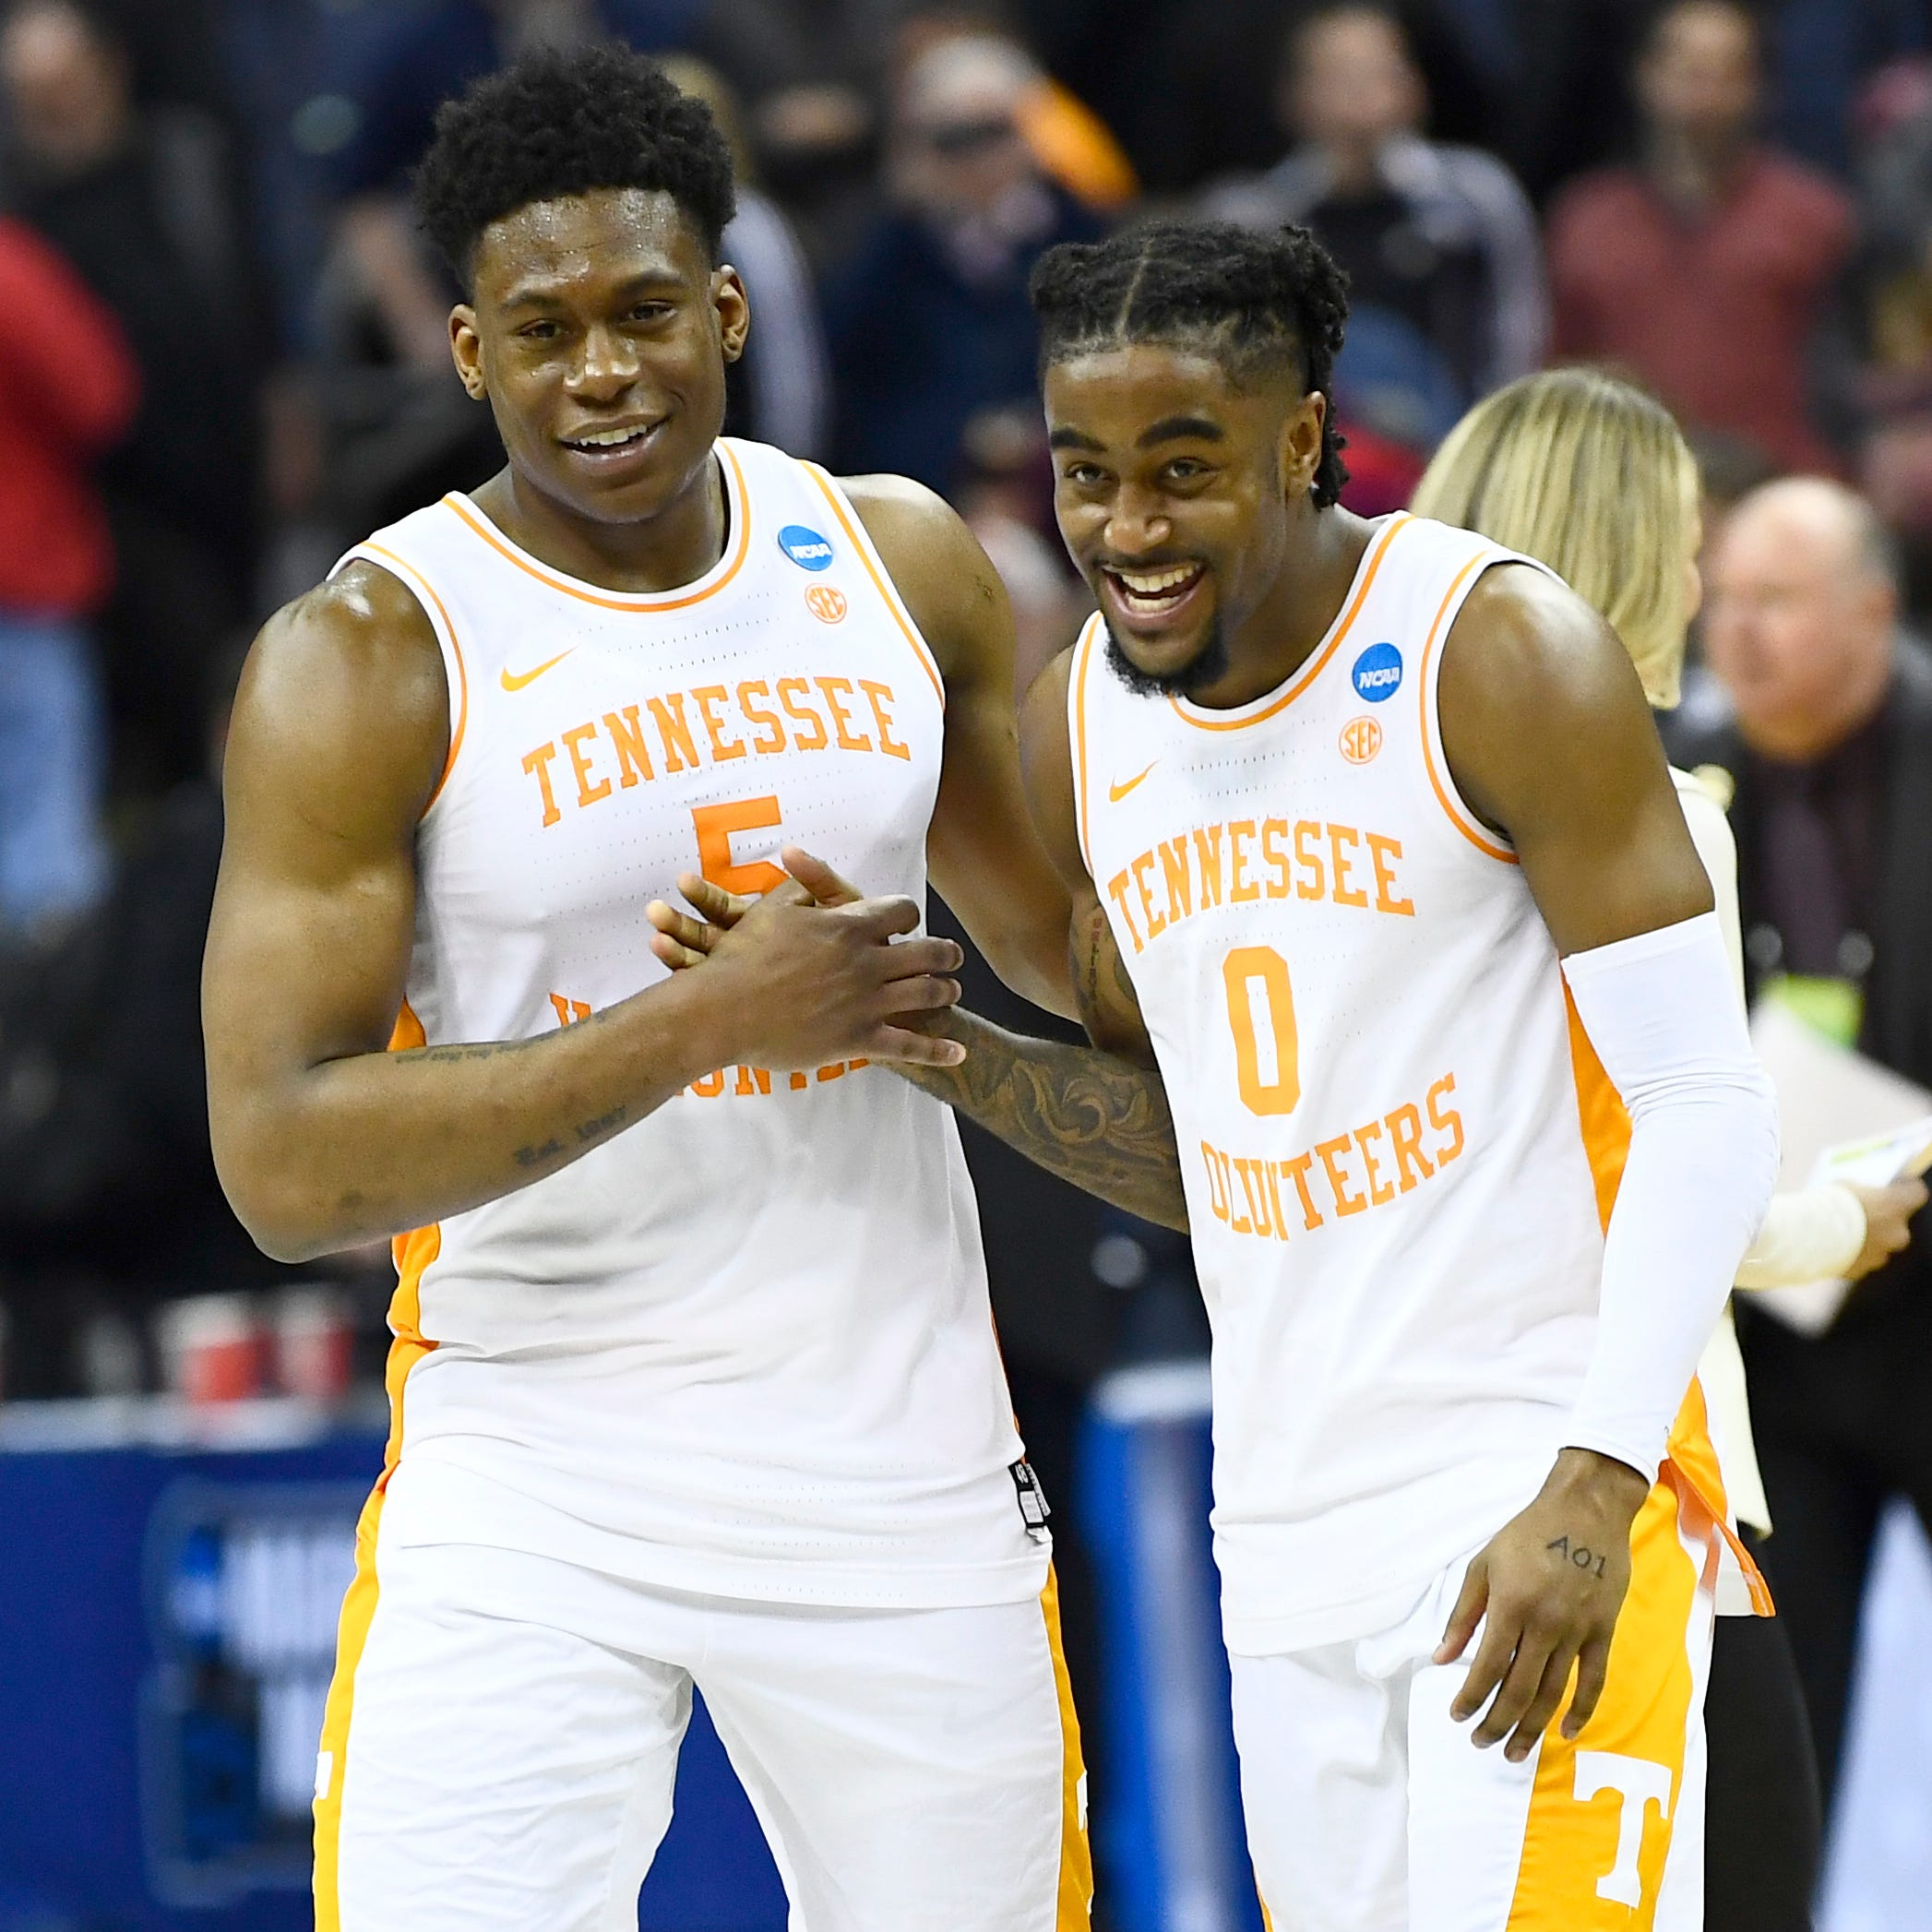 Admiral Schofield adjustment helps save Tennessee basketball vs No. 15 seed Colgate